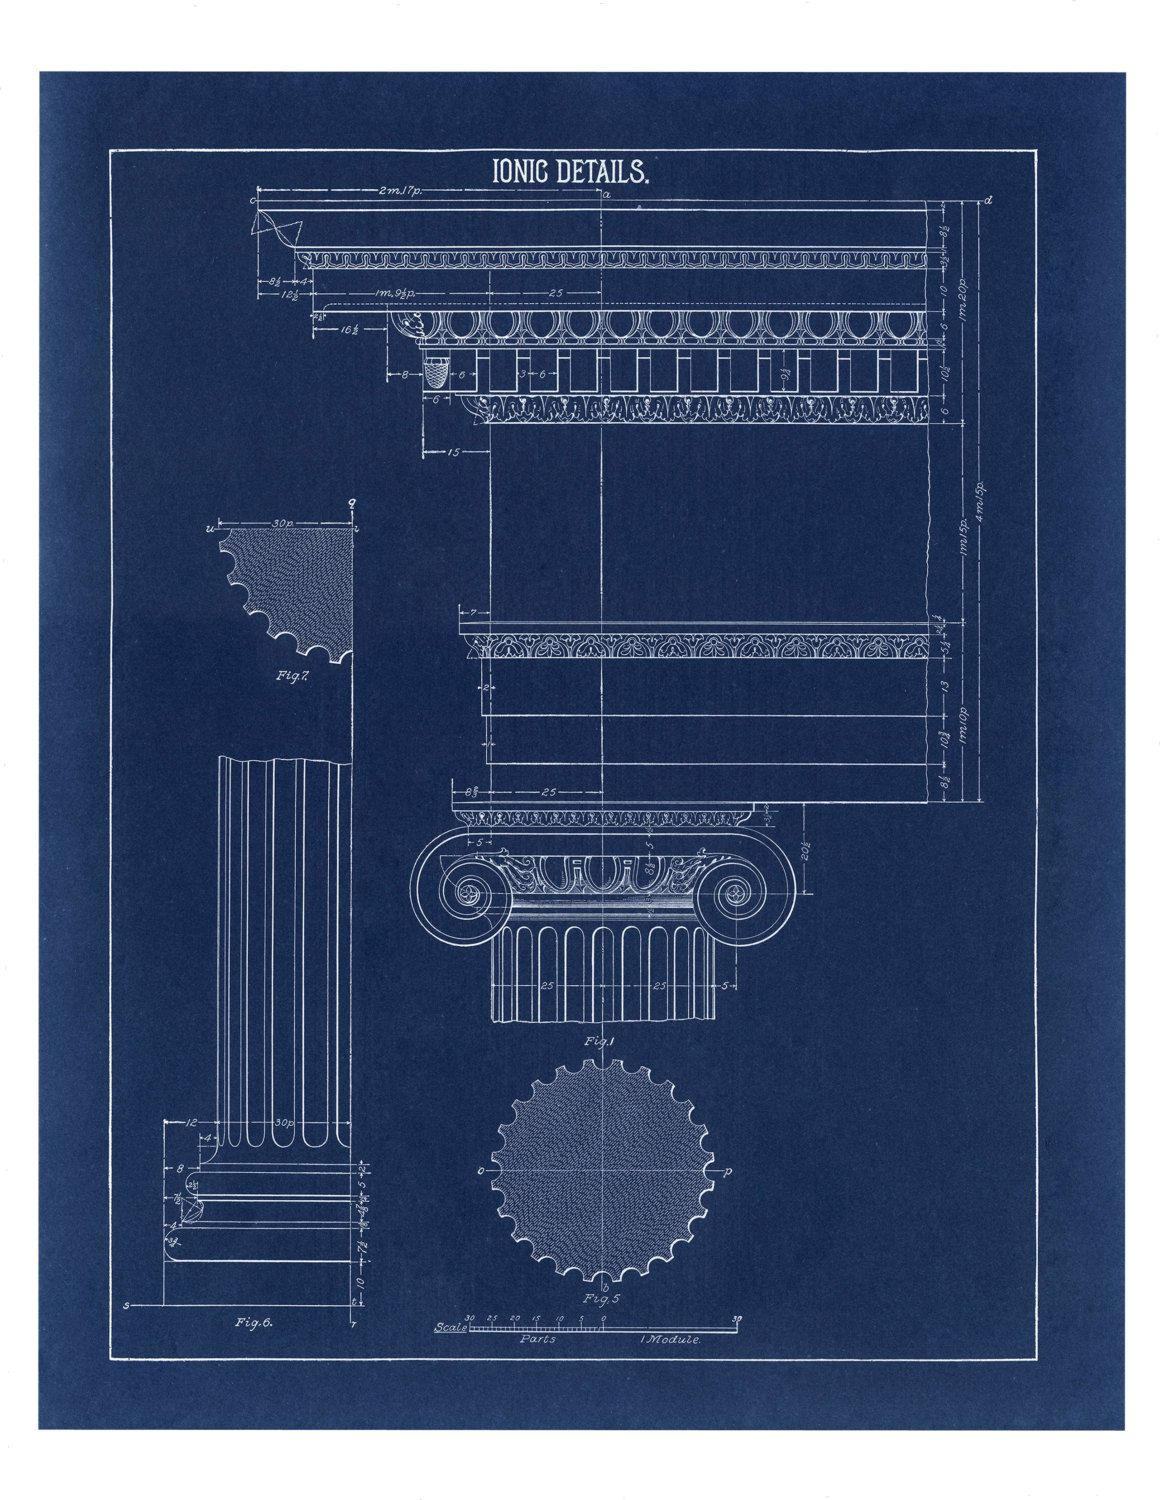 Blueprint home decor ionic column drawing blueprint fine art blueprint home decor ionic column drawing blueprint fine art print architecture blueprint print wall poster art blueprint art art malvernweather Gallery